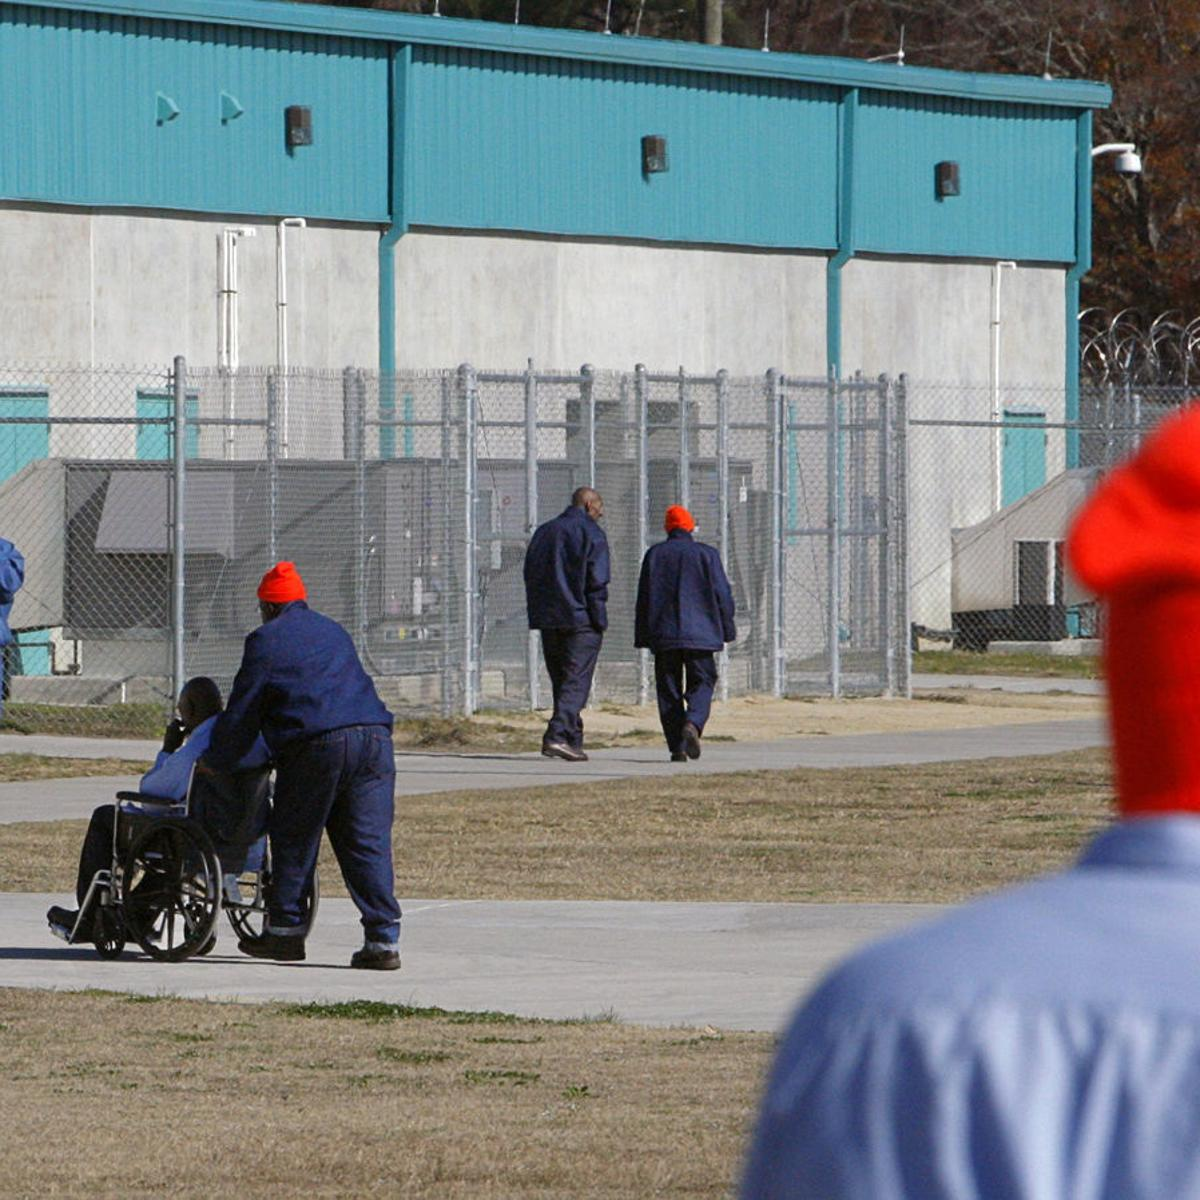 62 inmates released early - so far - in